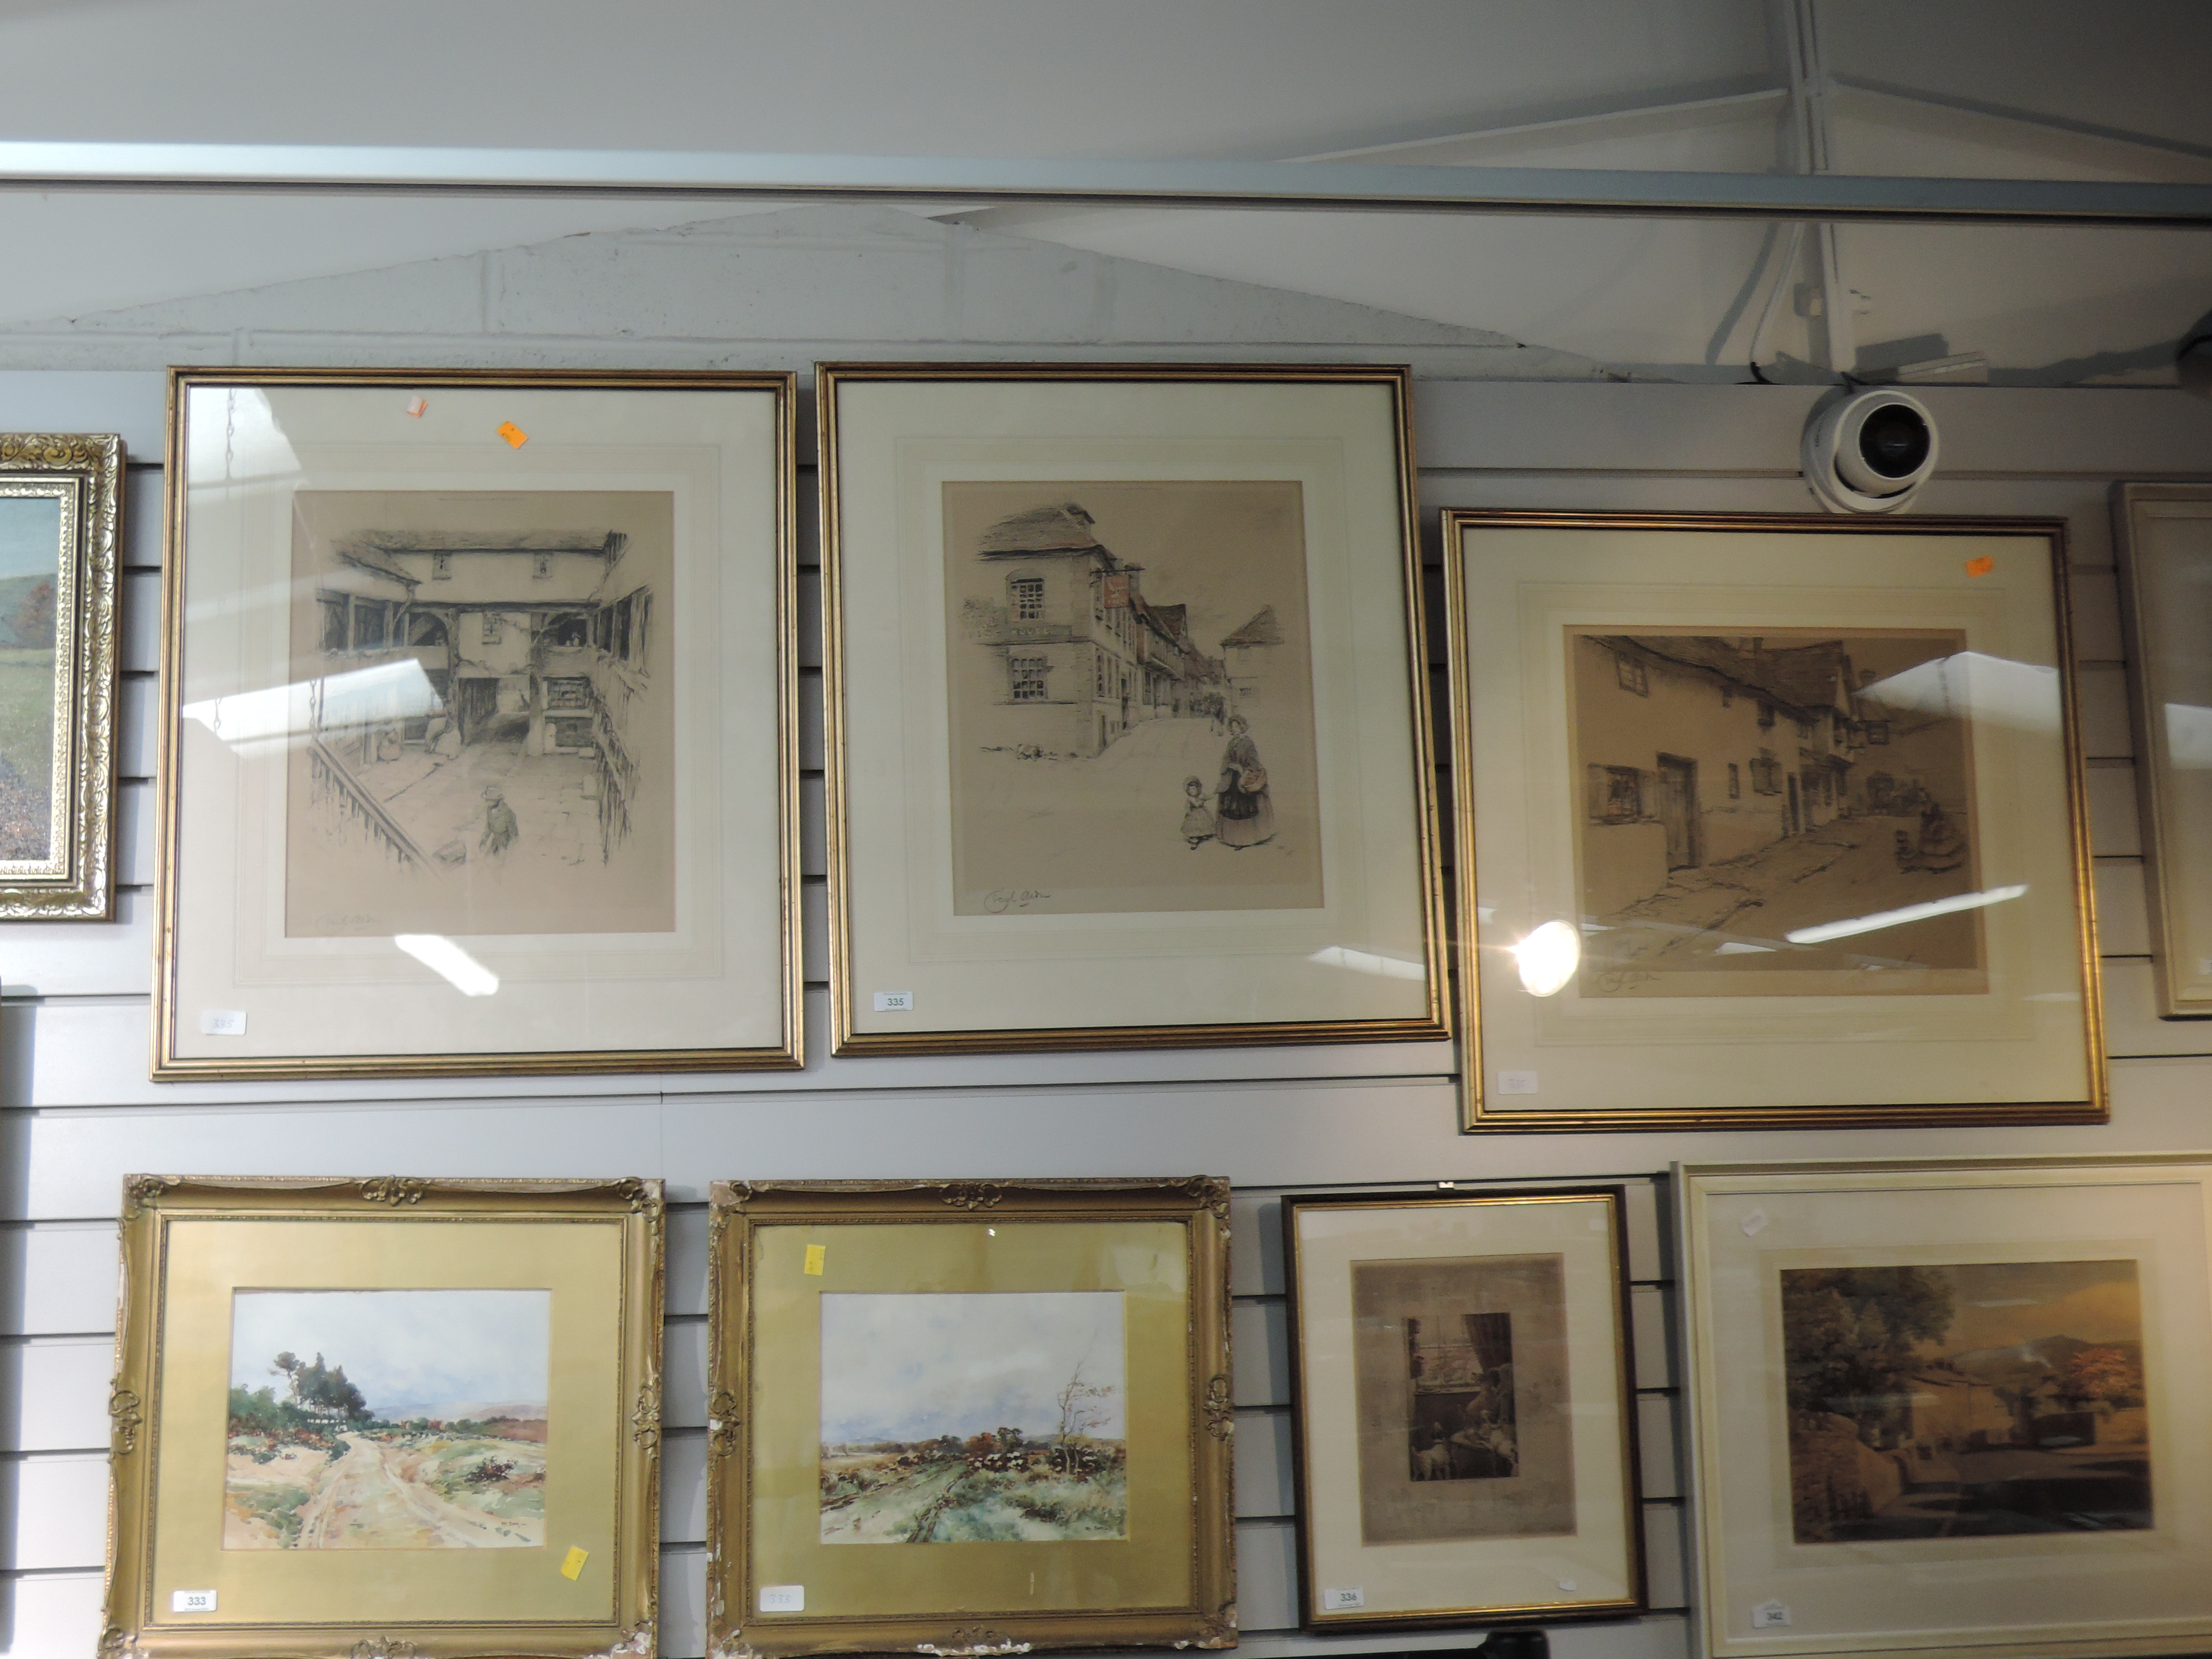 Lot 335 - Three prints, after Cecil Aldin, Old English Inns series, The Spread Eagle, Midhurst, signed, framed